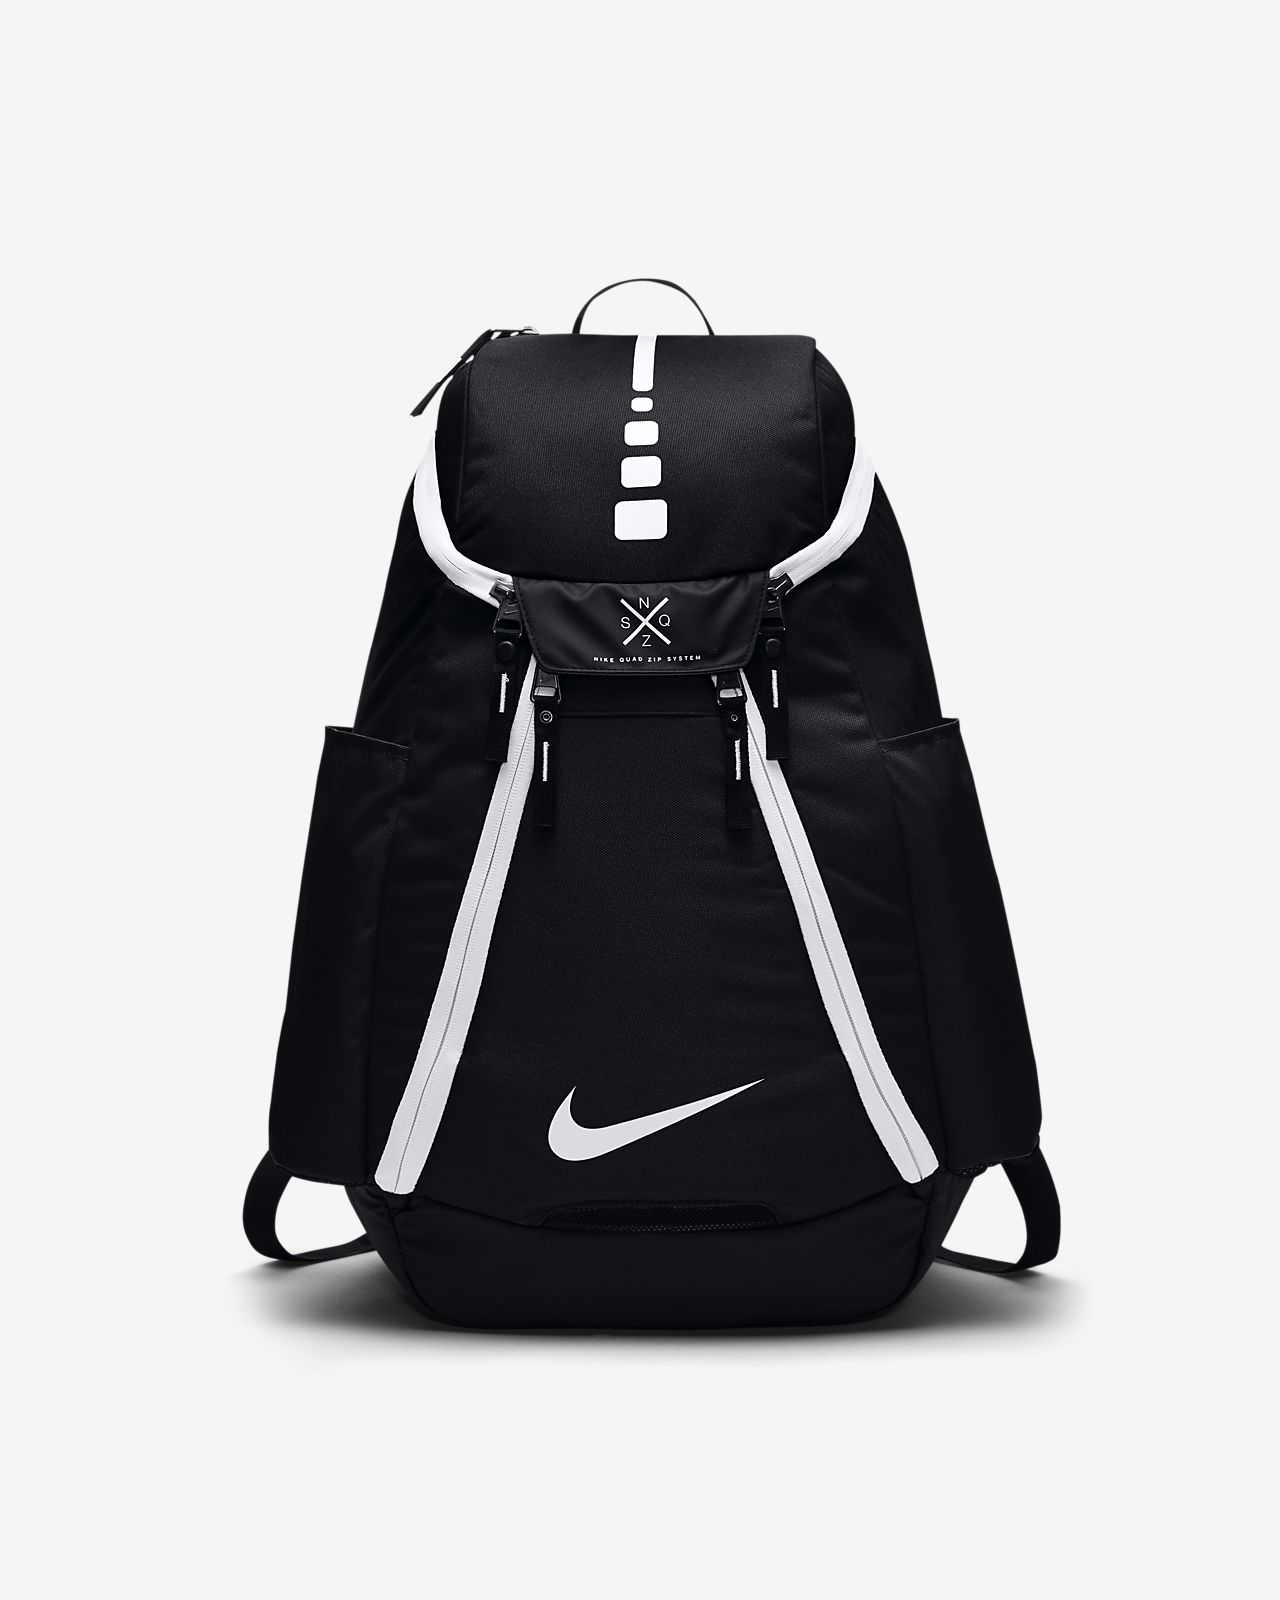 23053d05edc Nike Hoops Elite Max Air Team 2.0 Basketball Backpack. Nike.com ID